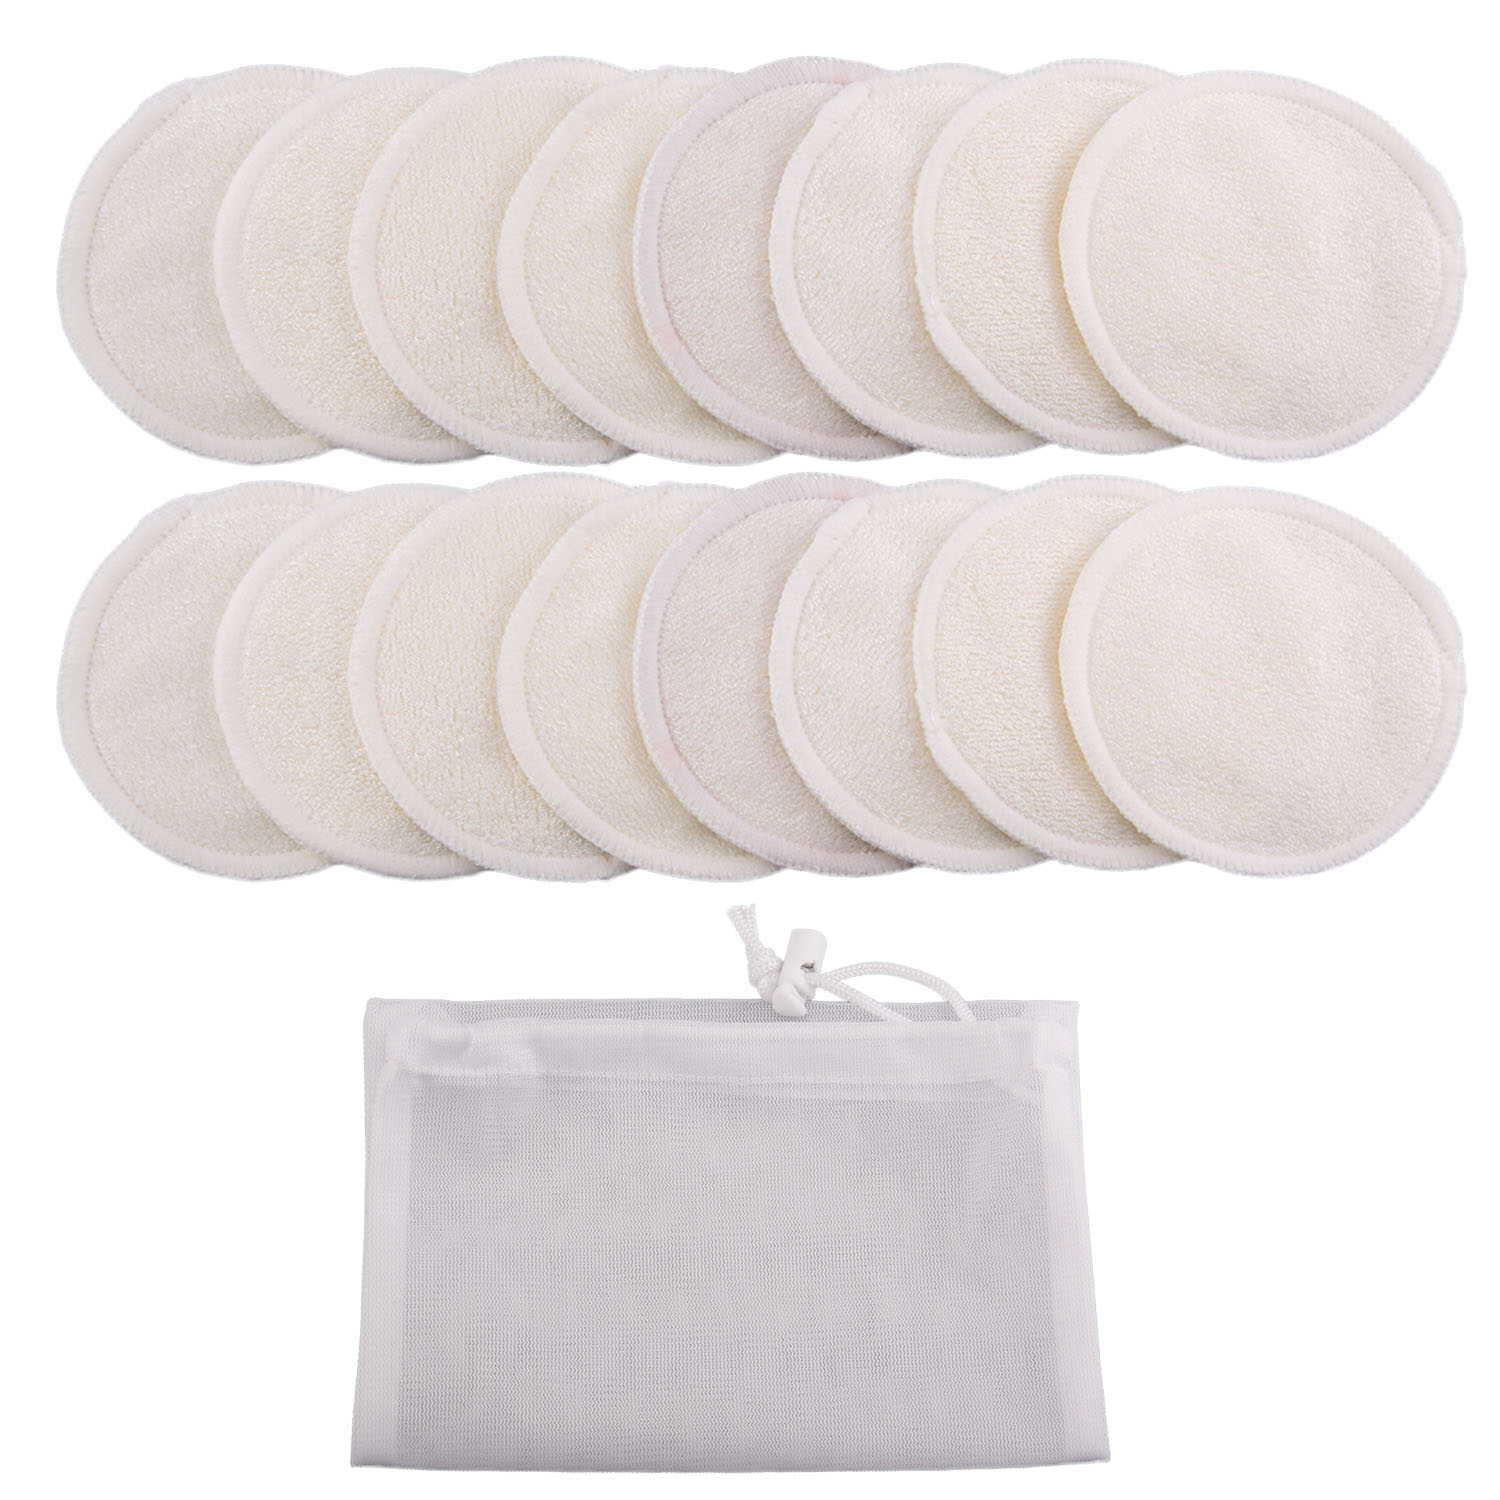 16pcs Reusable Makeup Removal Pad Washable Cotton Pad for Facial Cleaning